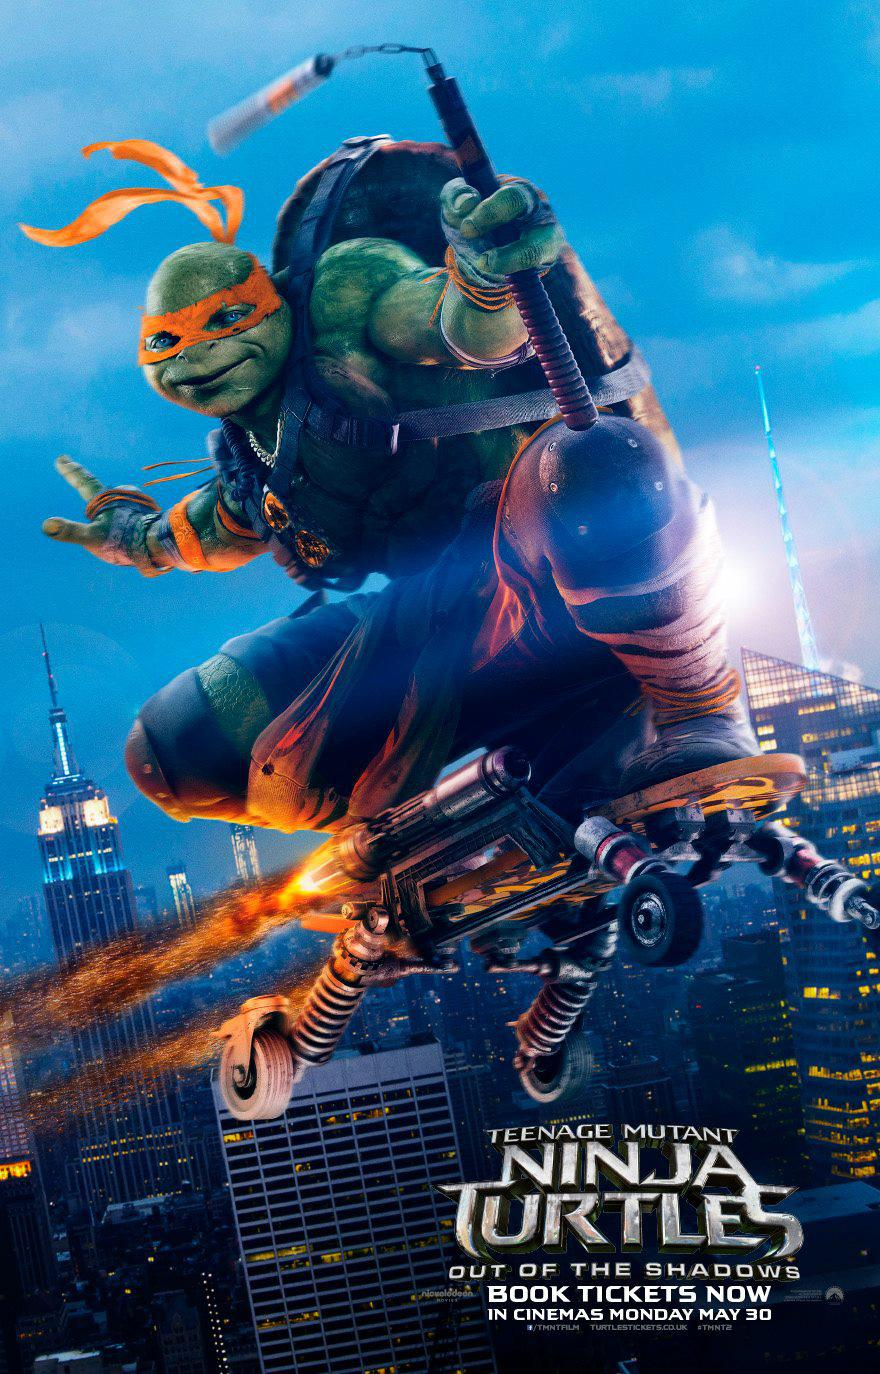 TMNT - Teenage Mutant Ninja Turtles out of the Shadows - Fuori dall'Ombra (2016) - flying